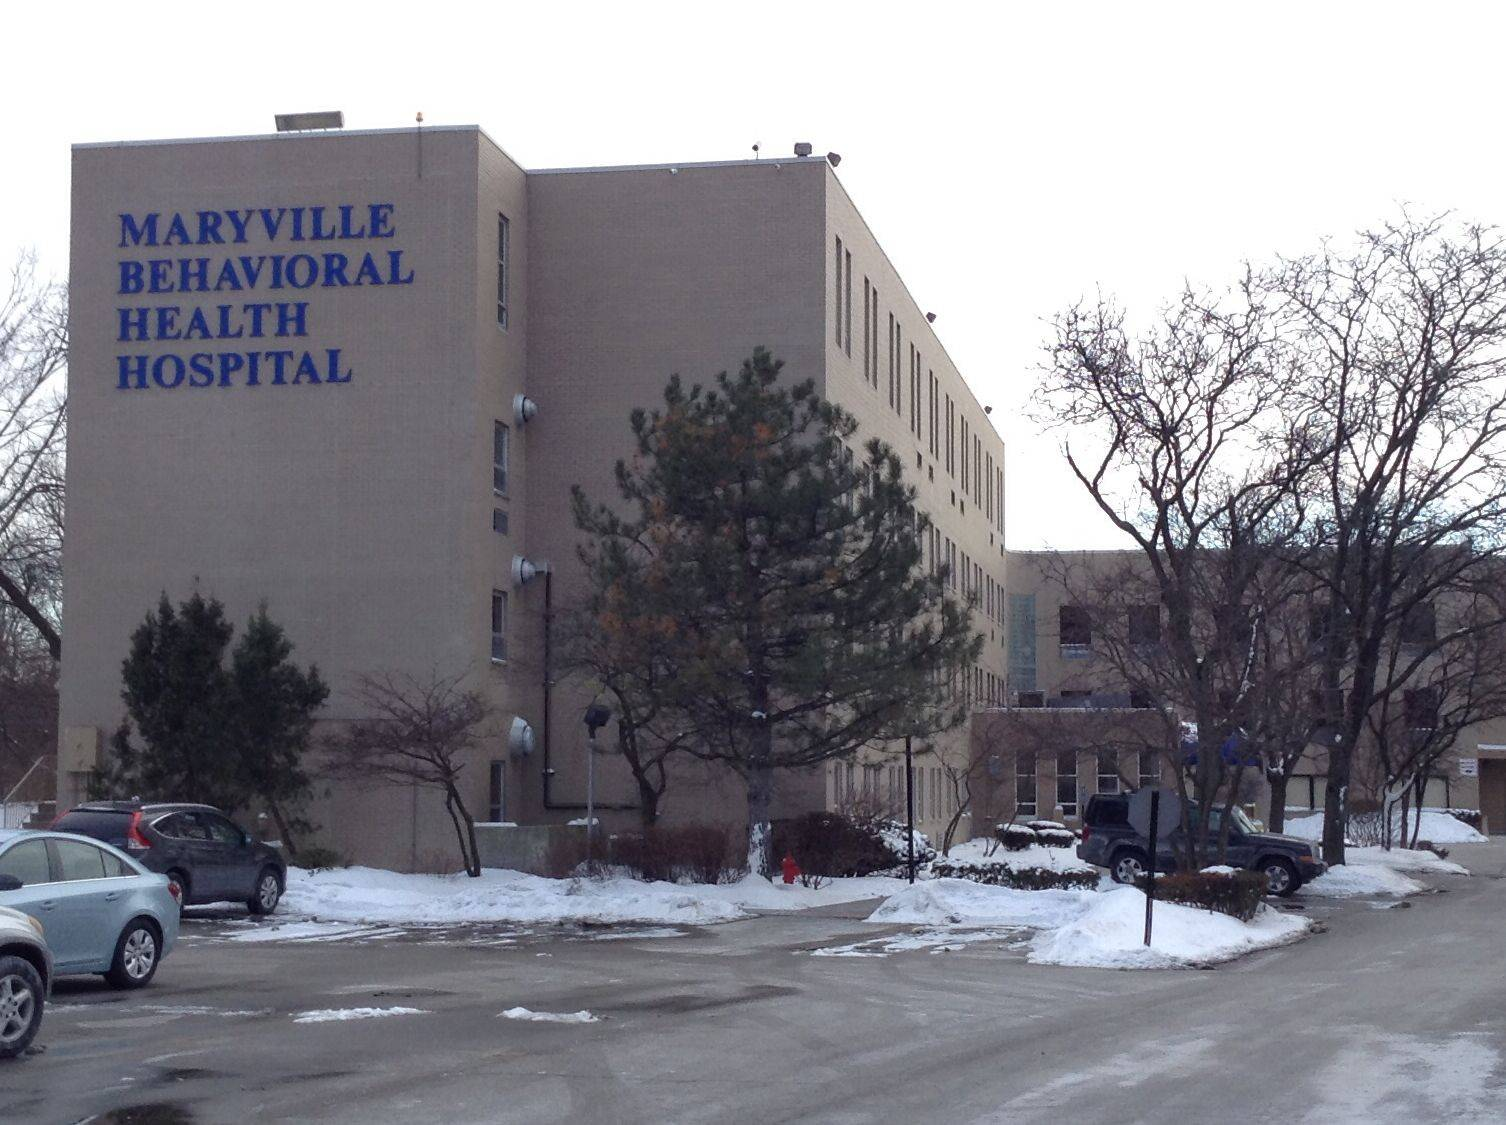 Officials announced Thursday that the Maryville Behavioral Health Hospital in Des Plaines will close by June, pending state approval.